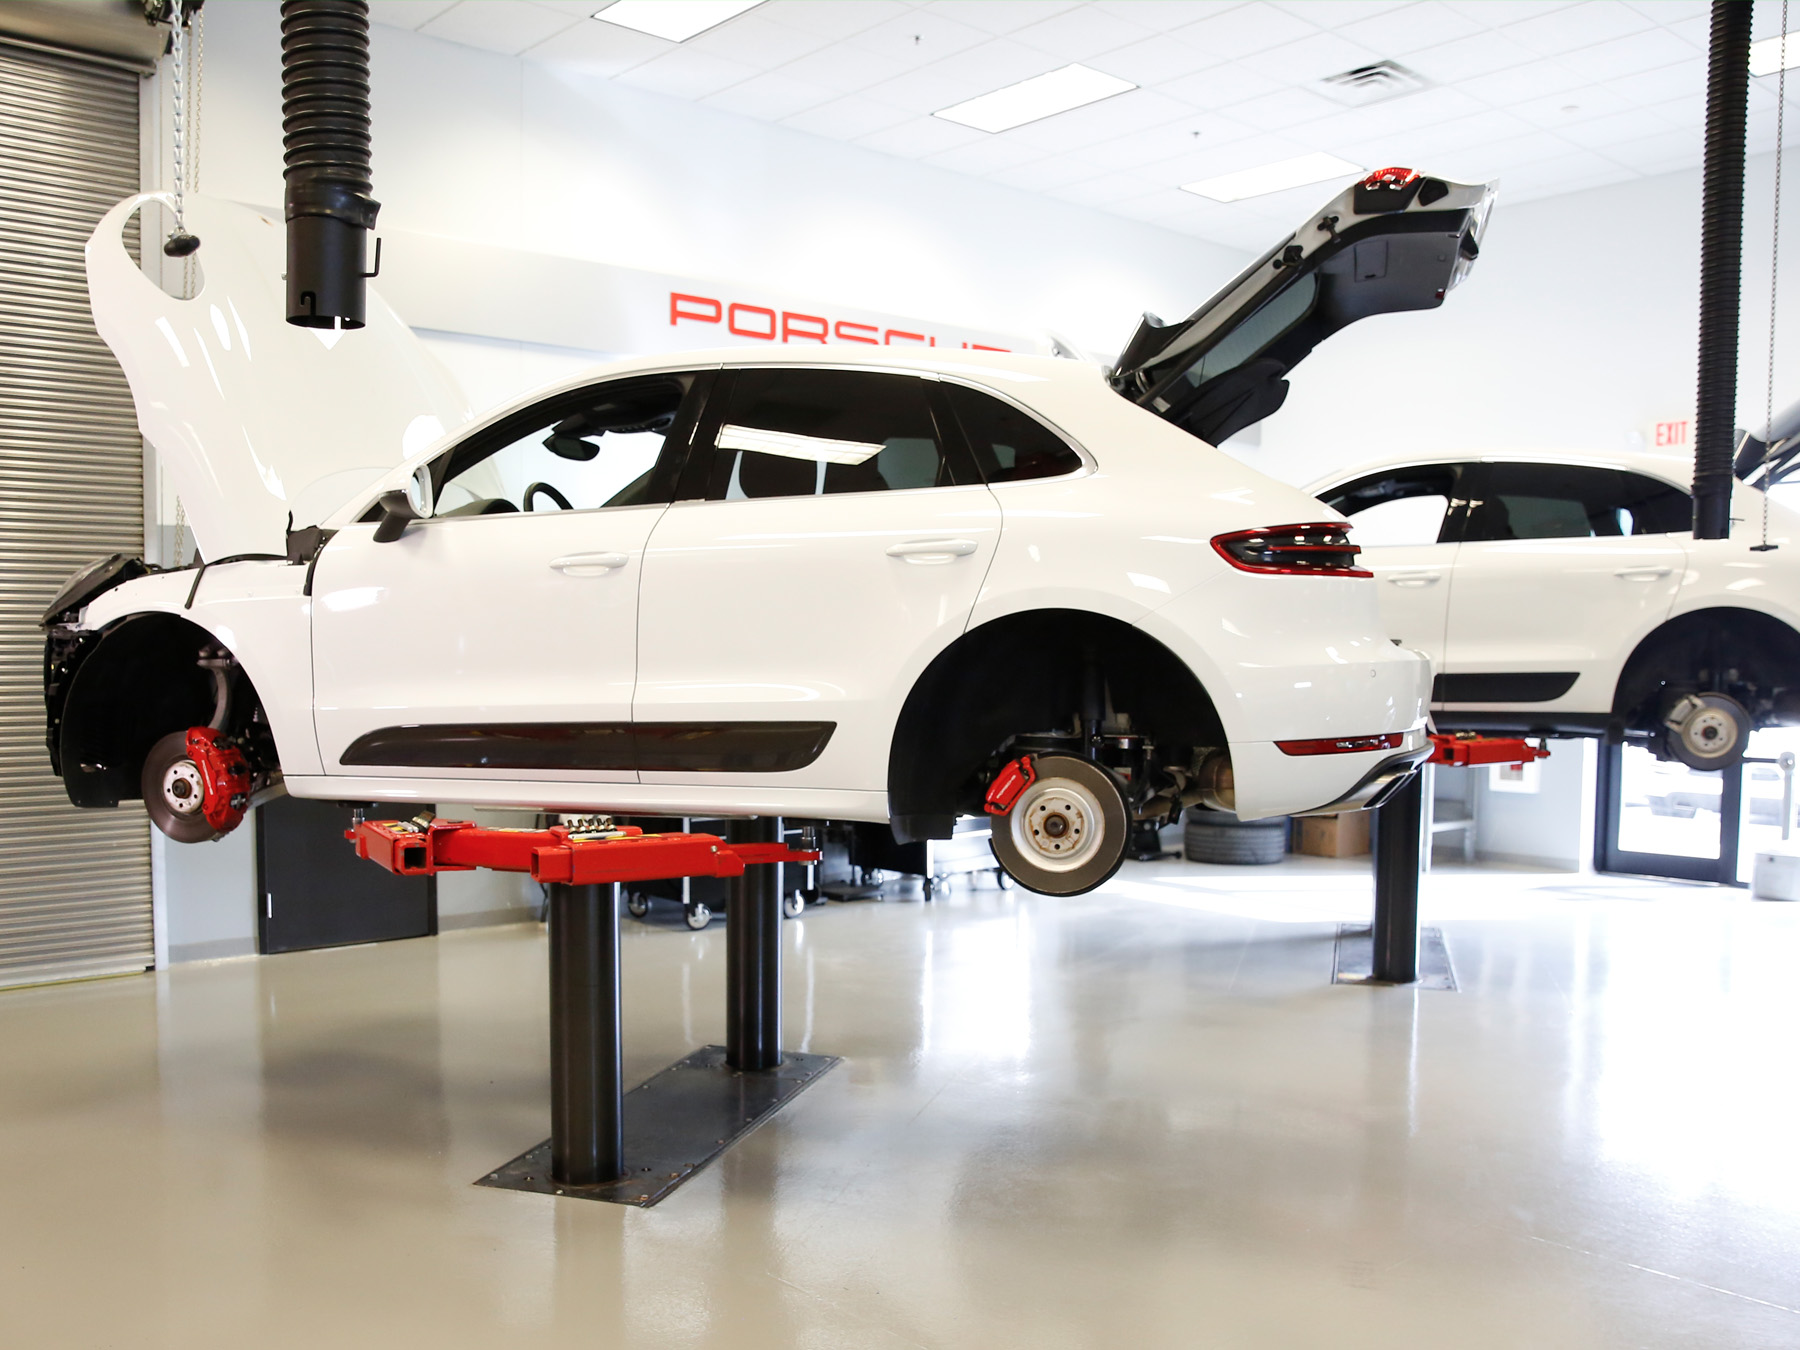 White Porsche car on a lift in the Porsche auto lab